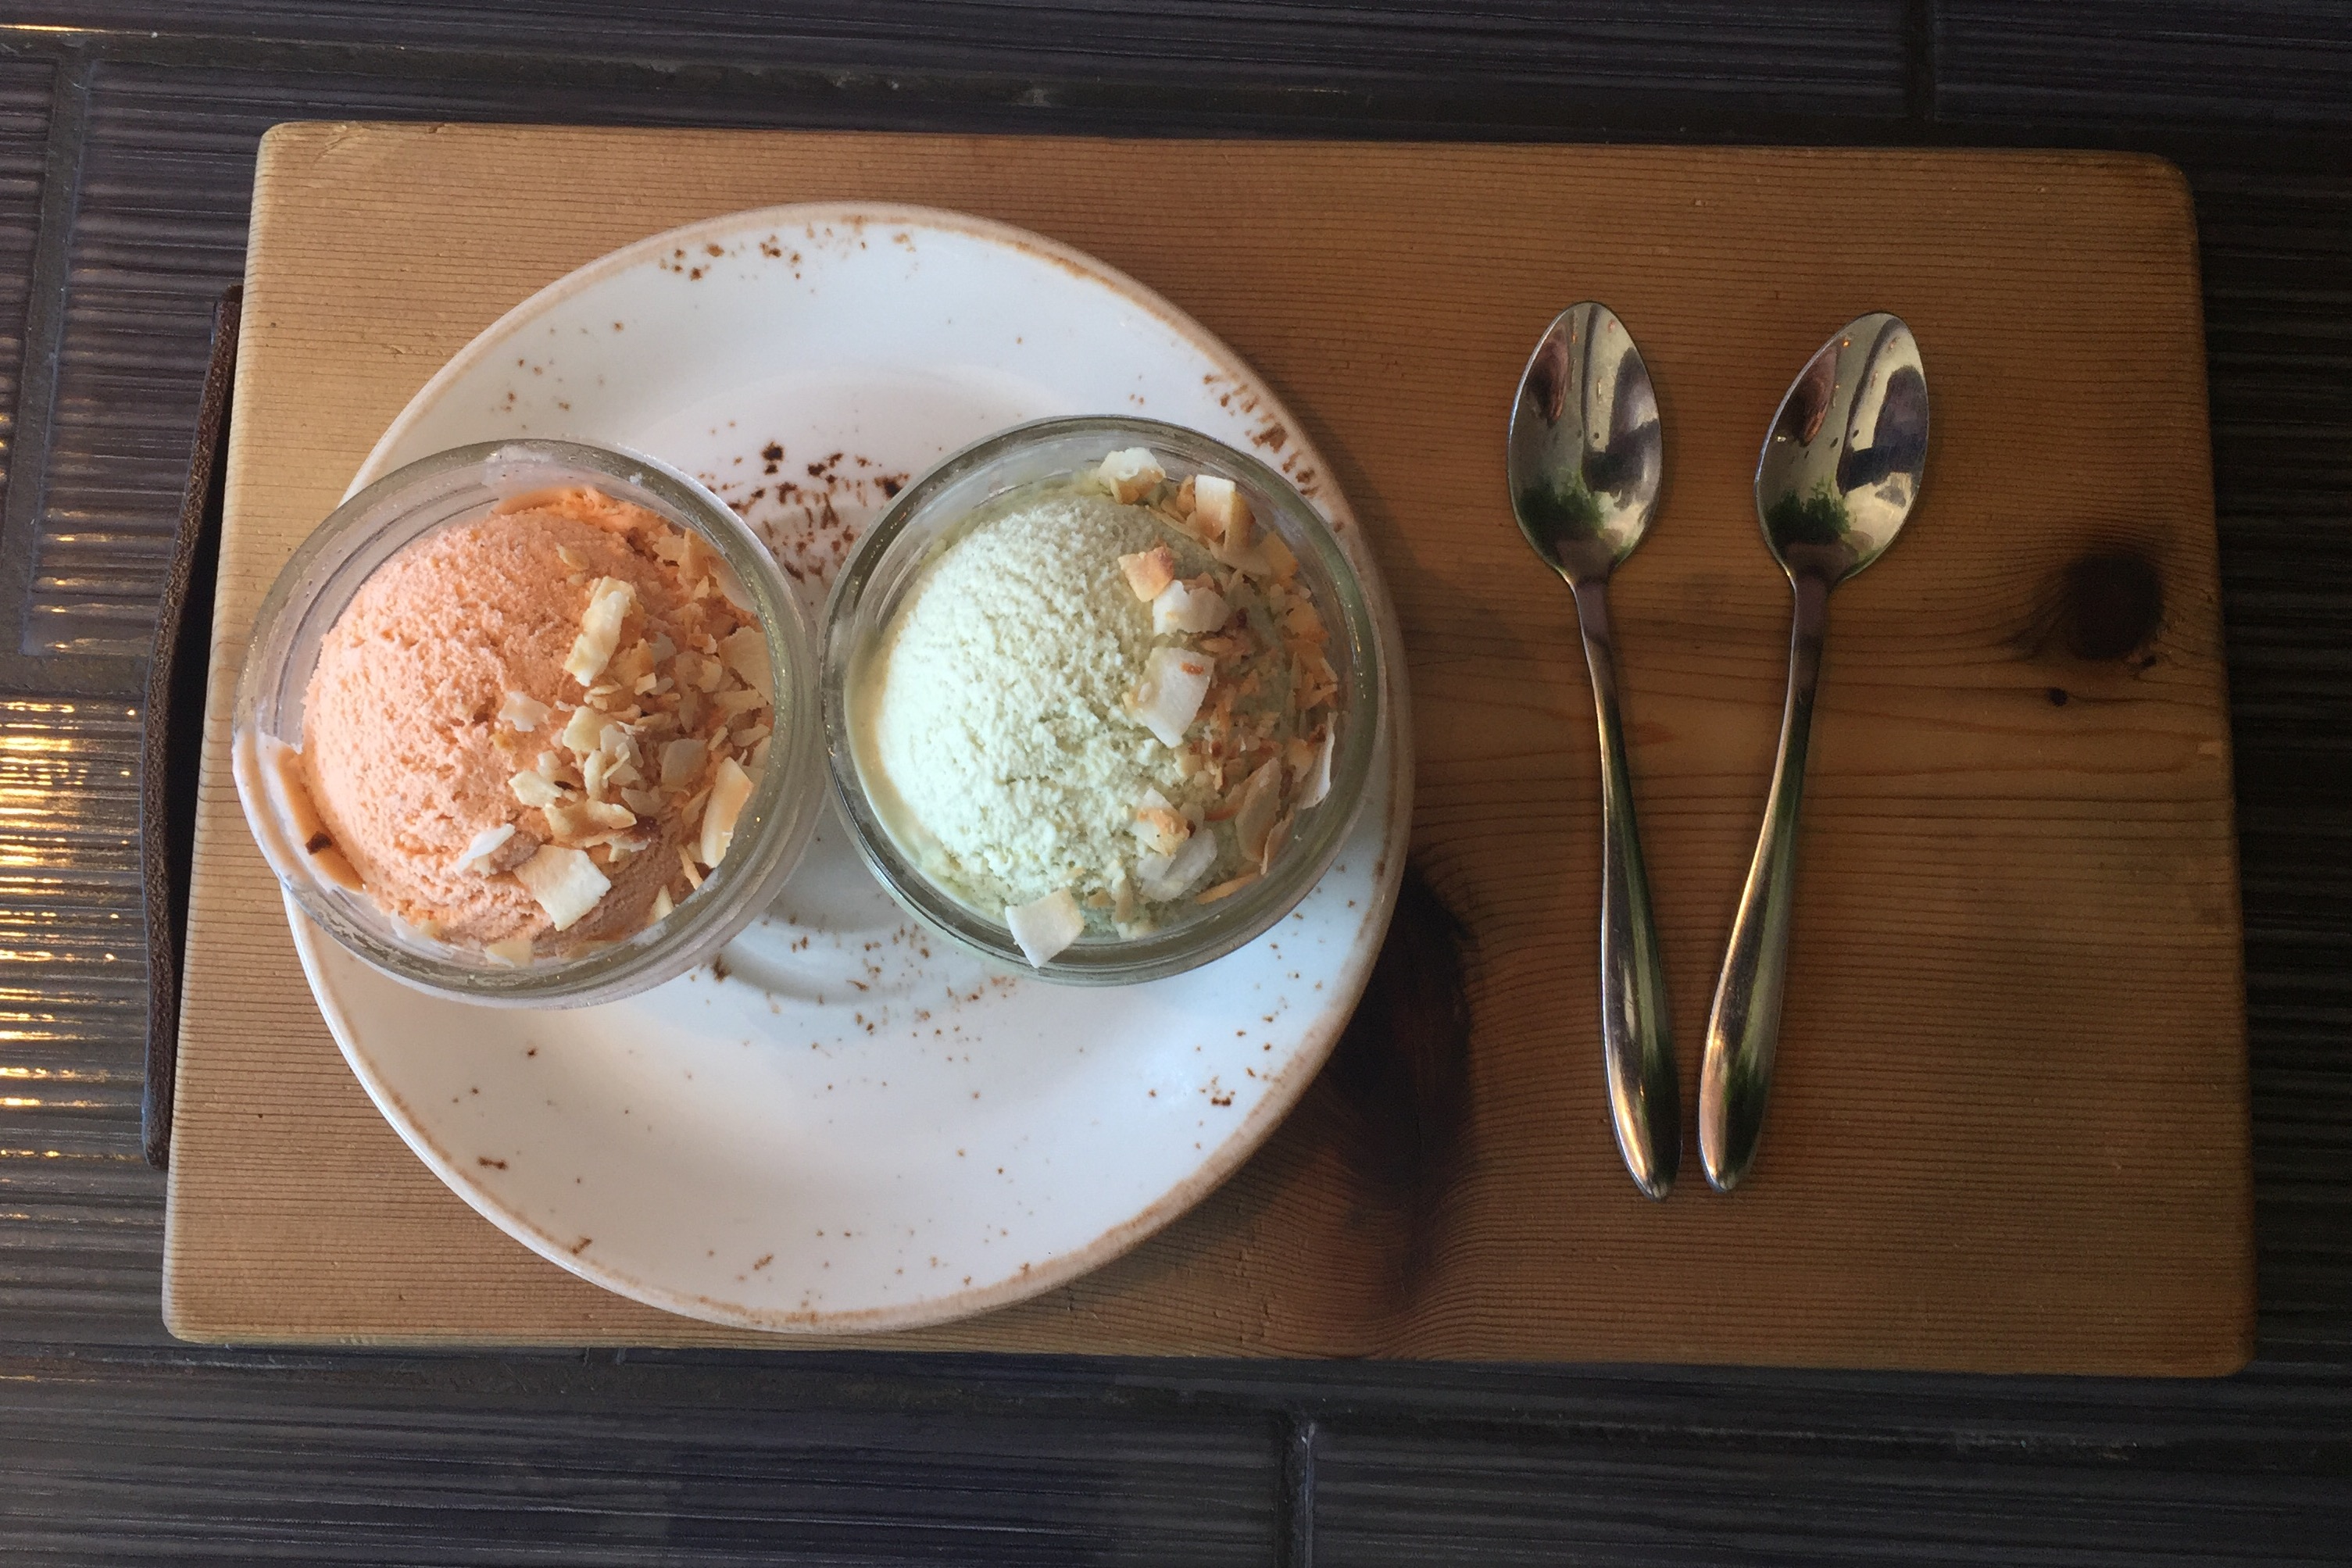 Thai Milk Tea Ice Cream and Pandan Leaf Ice Cream